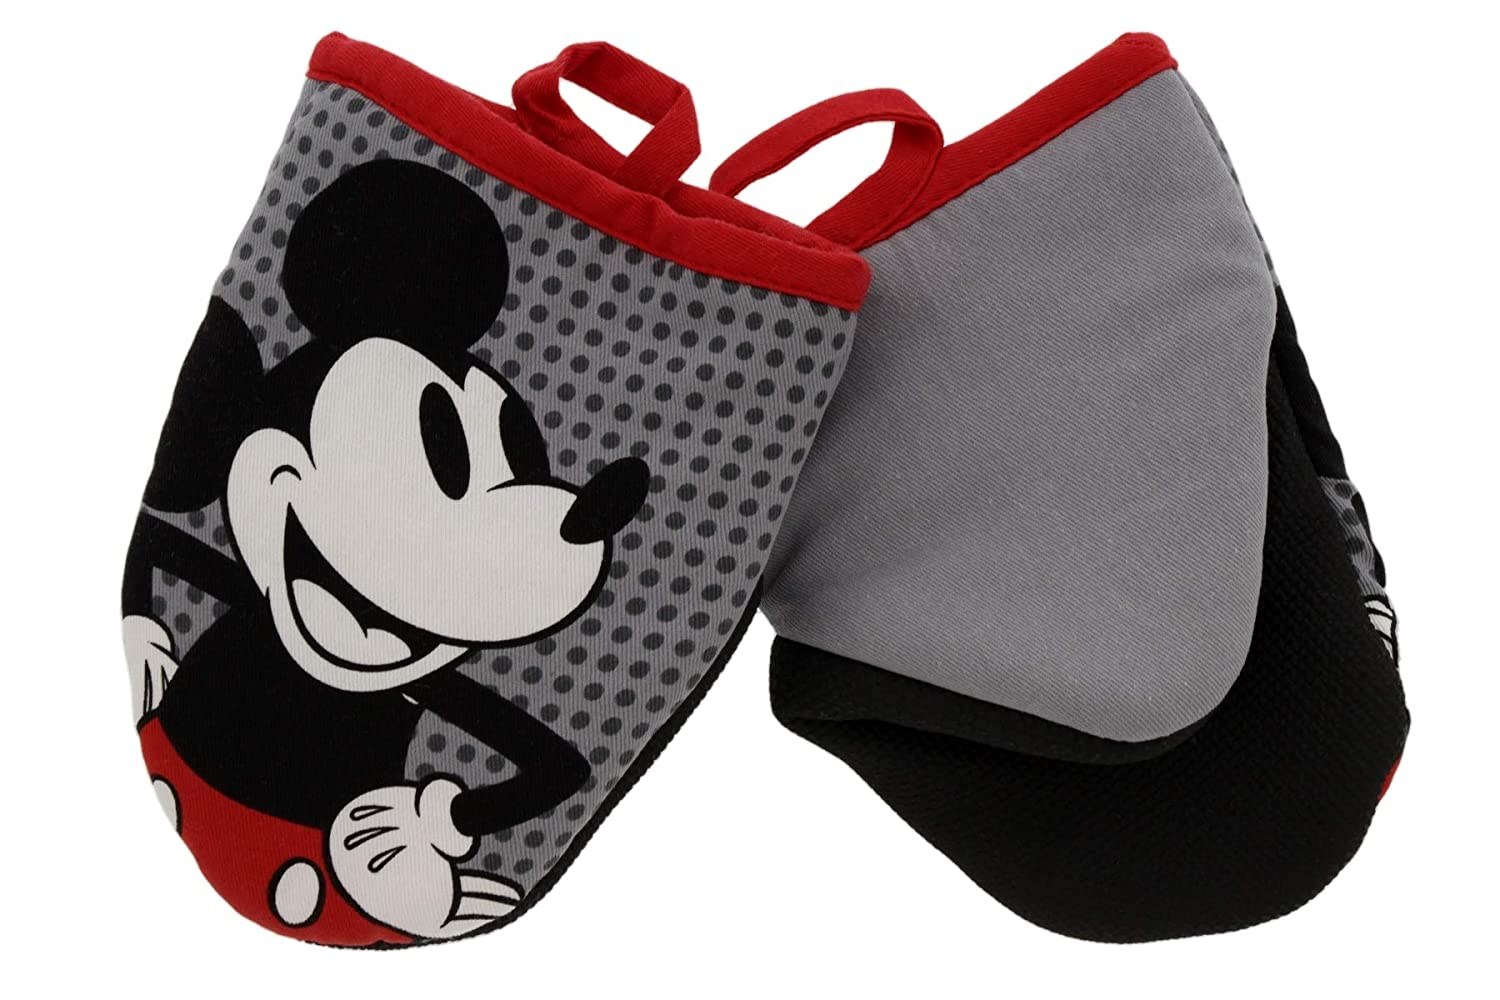 "Disney Kitchen Cotton Mini Oven Mitts/Glove Set w/Neoprene Insulation for Easy Gripping While Cooking, Heat Resistant Kitchen Accessories, 5.5"" x 6.5"", Mickey Grey Dots, 2pk"